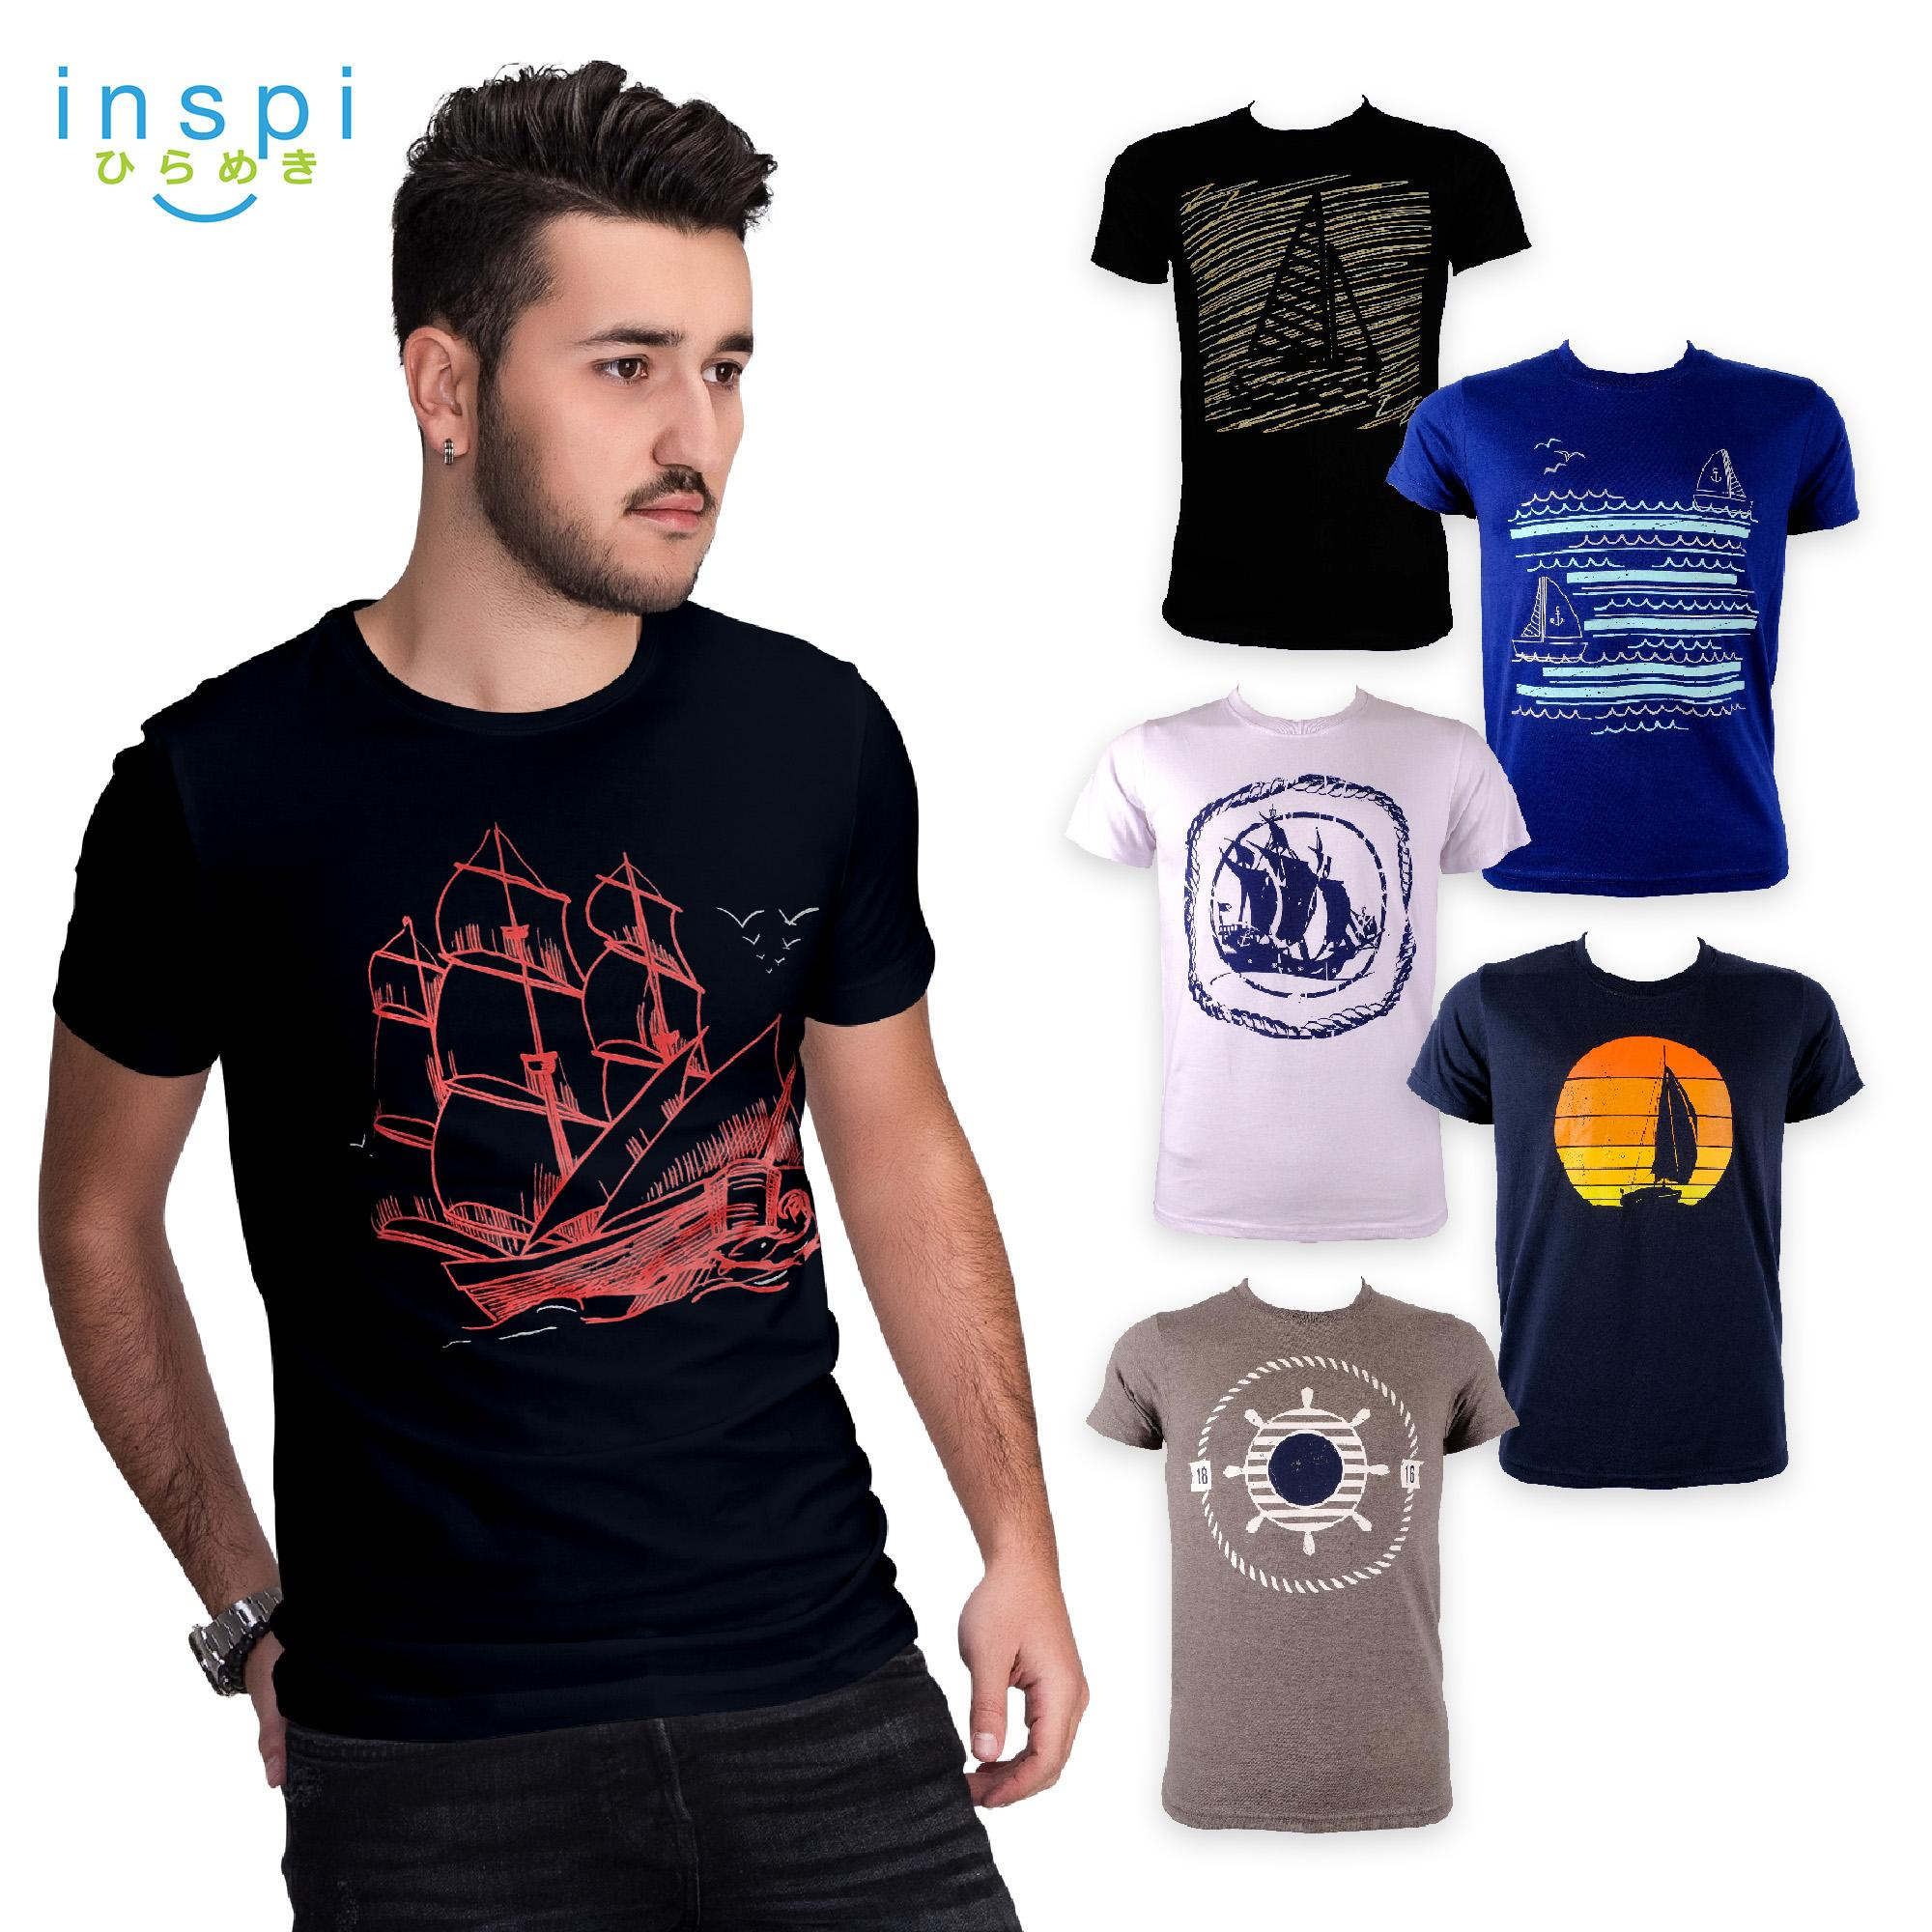 8e7fcce44 INSPI Tees Sailing Collection tshirt printed graphic tee Mens t shirt shirts  for men tshirts sale